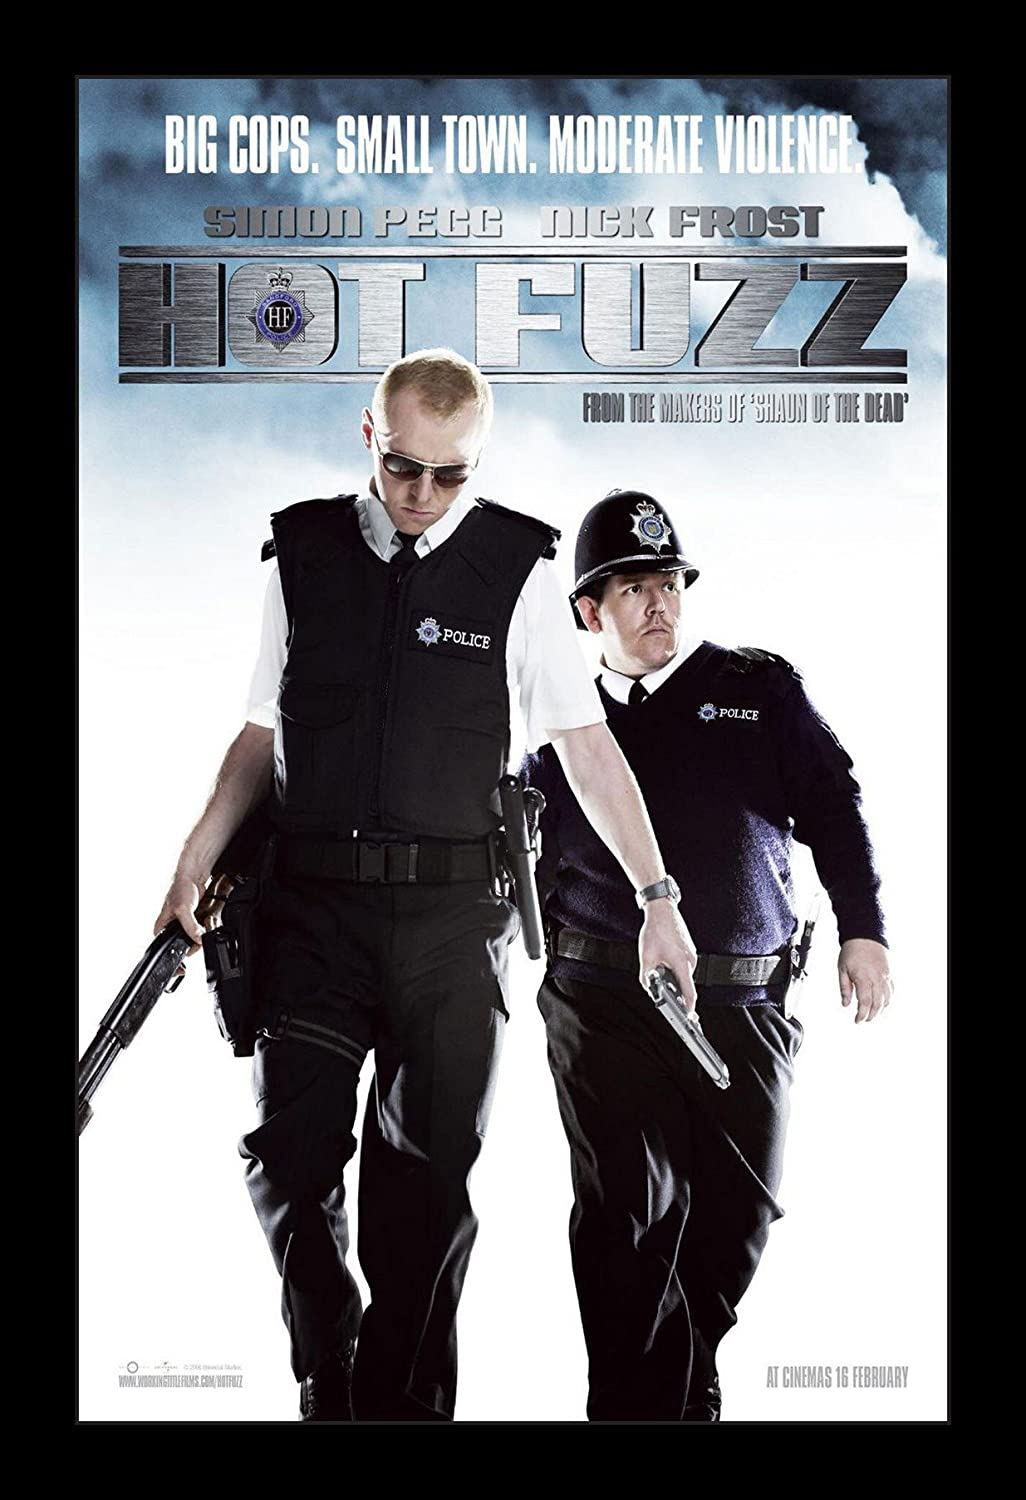 Hot Fuzz - 11x17 Framed Movie Poster by Wallspace